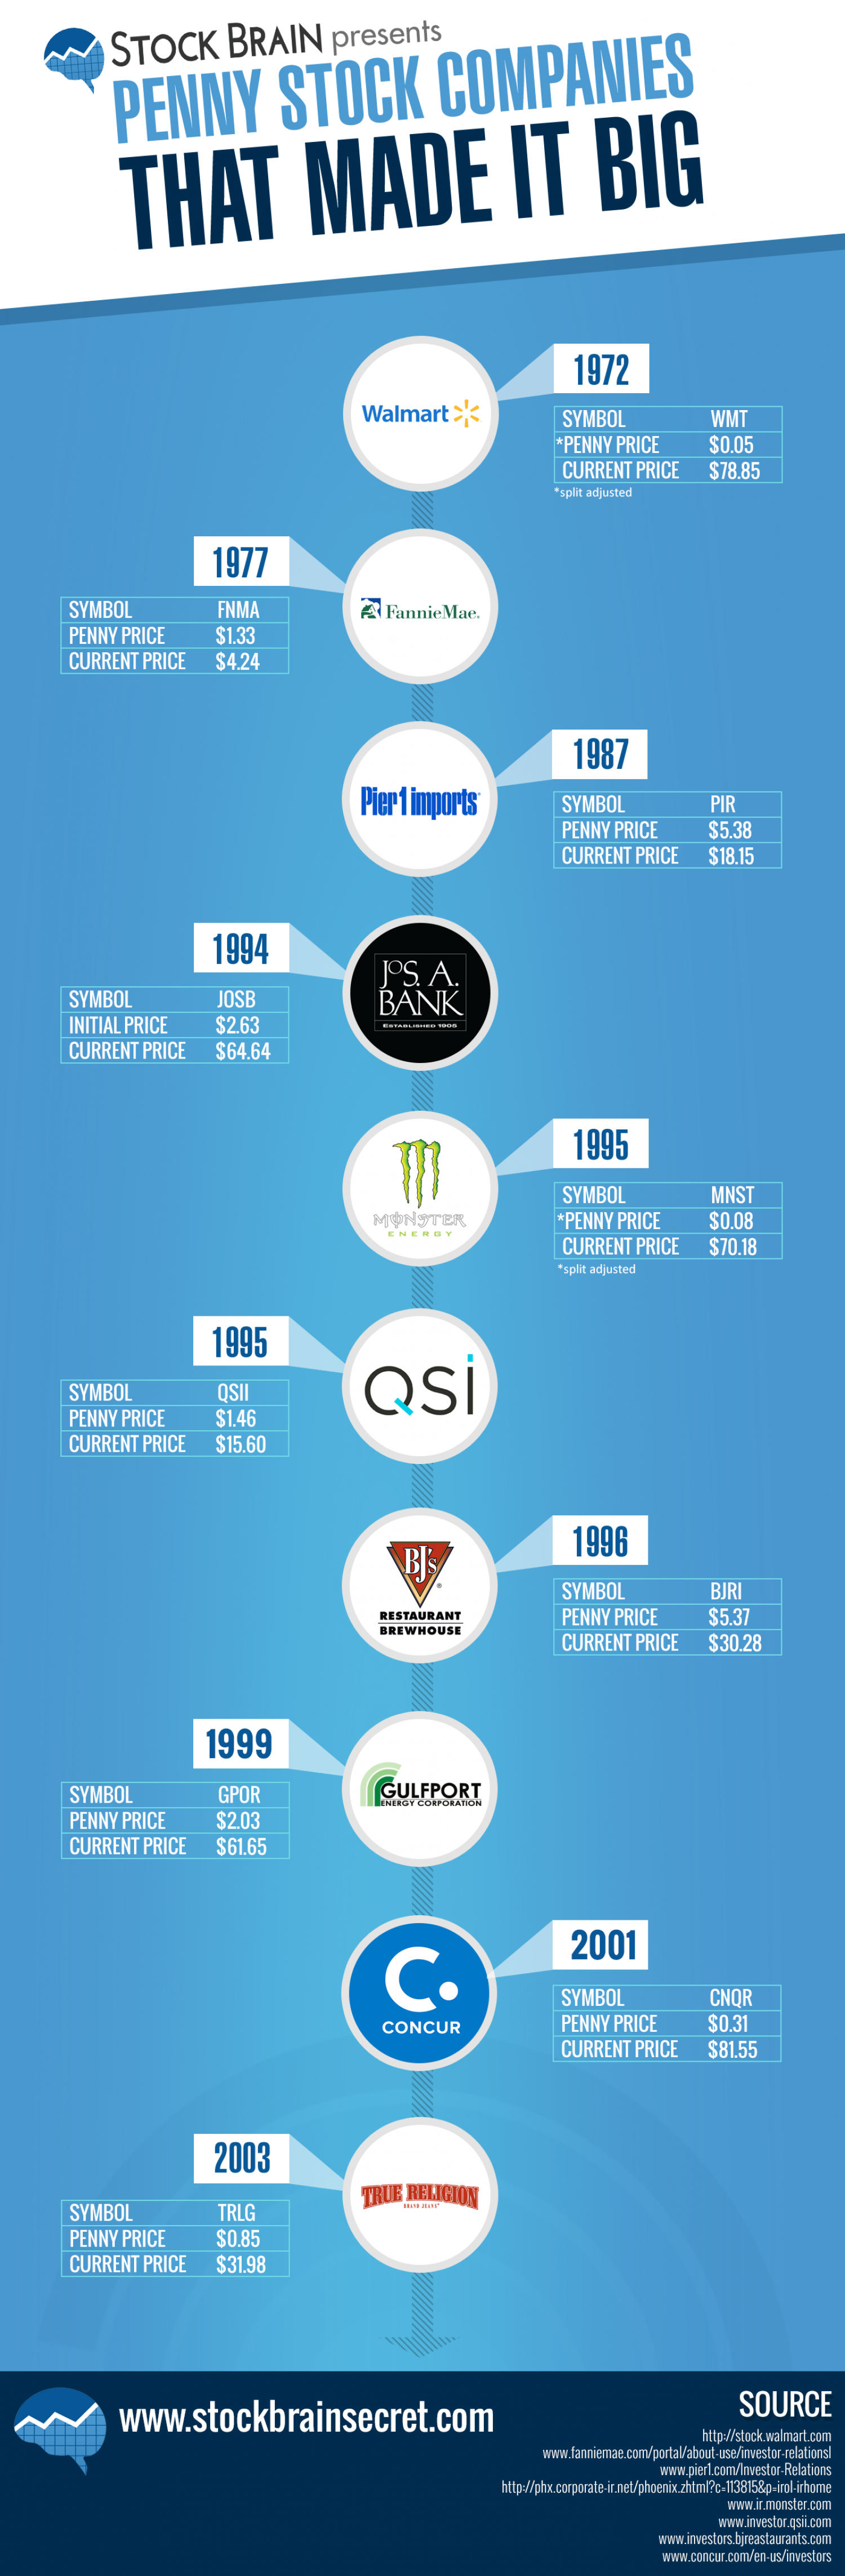 Penny Stock Companies that Made it Big Infographic